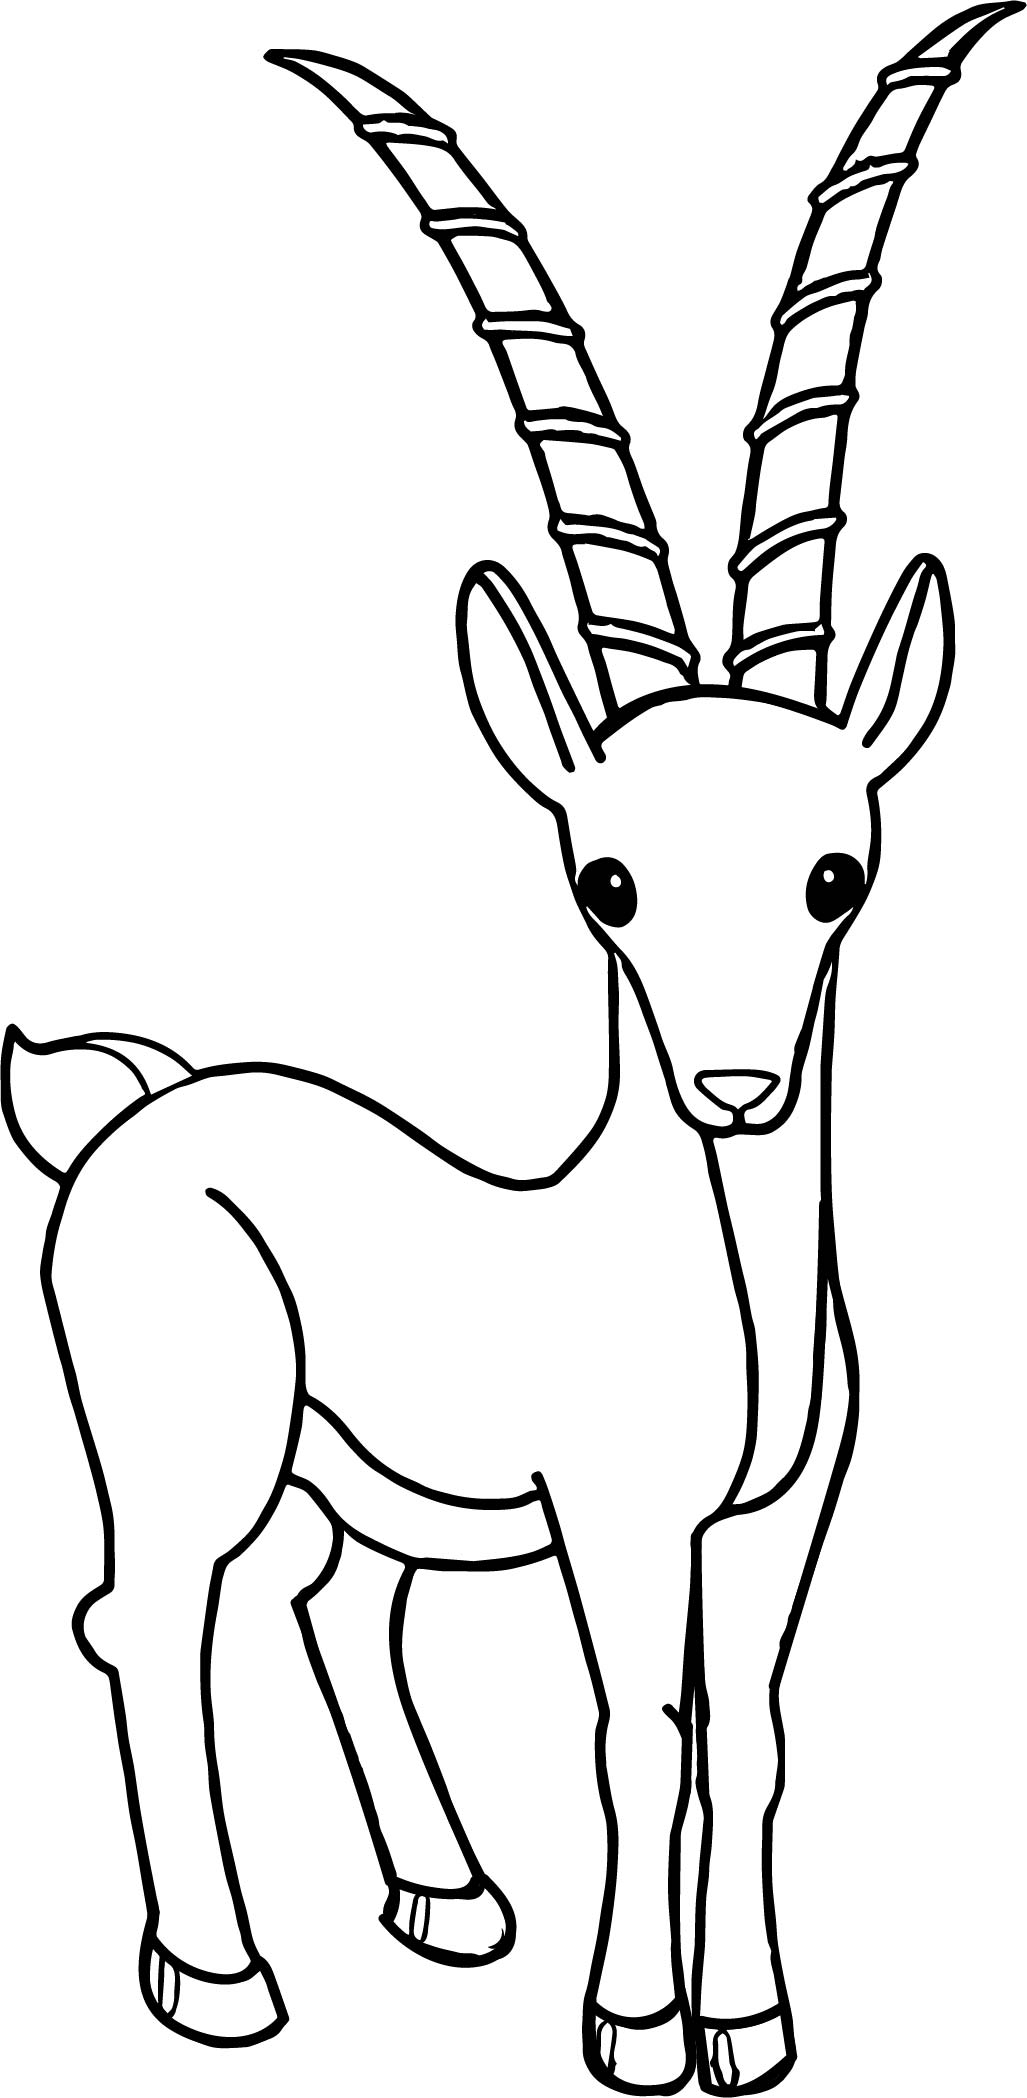 Cartoon Antelope Coloring Page